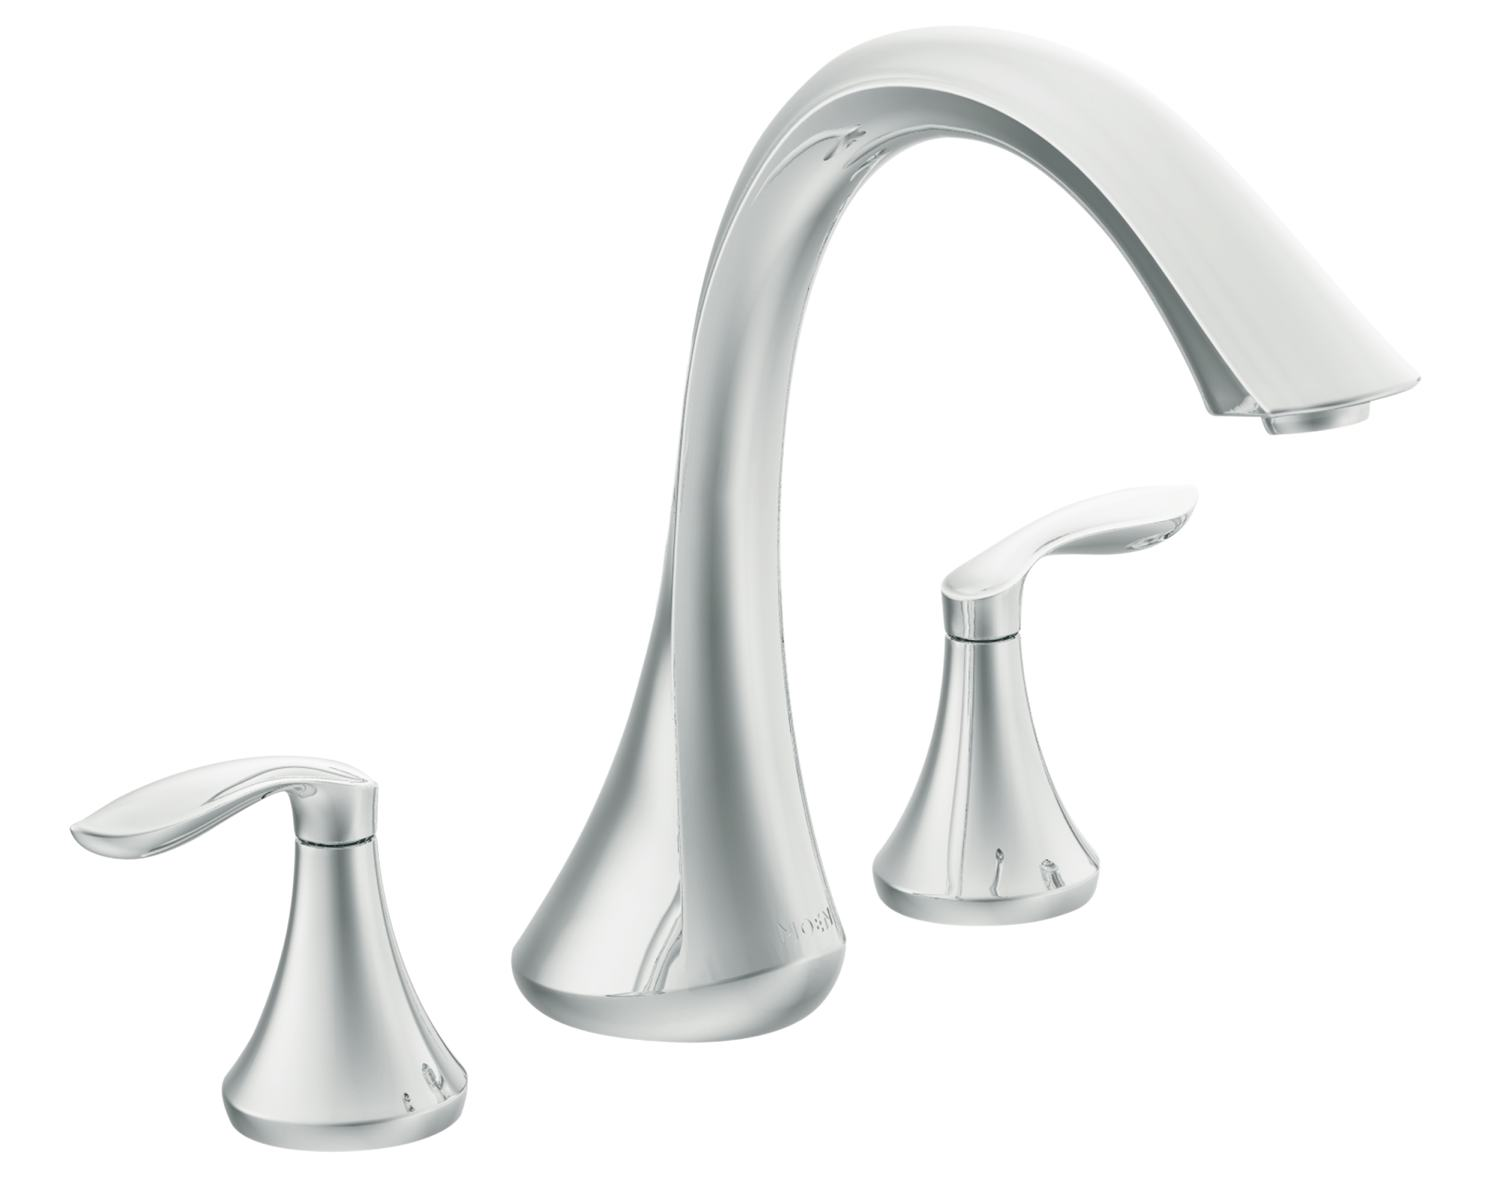 ... Roman Tub Faucet without Valve, Chrome - Bathtub Faucets - Amazon.com